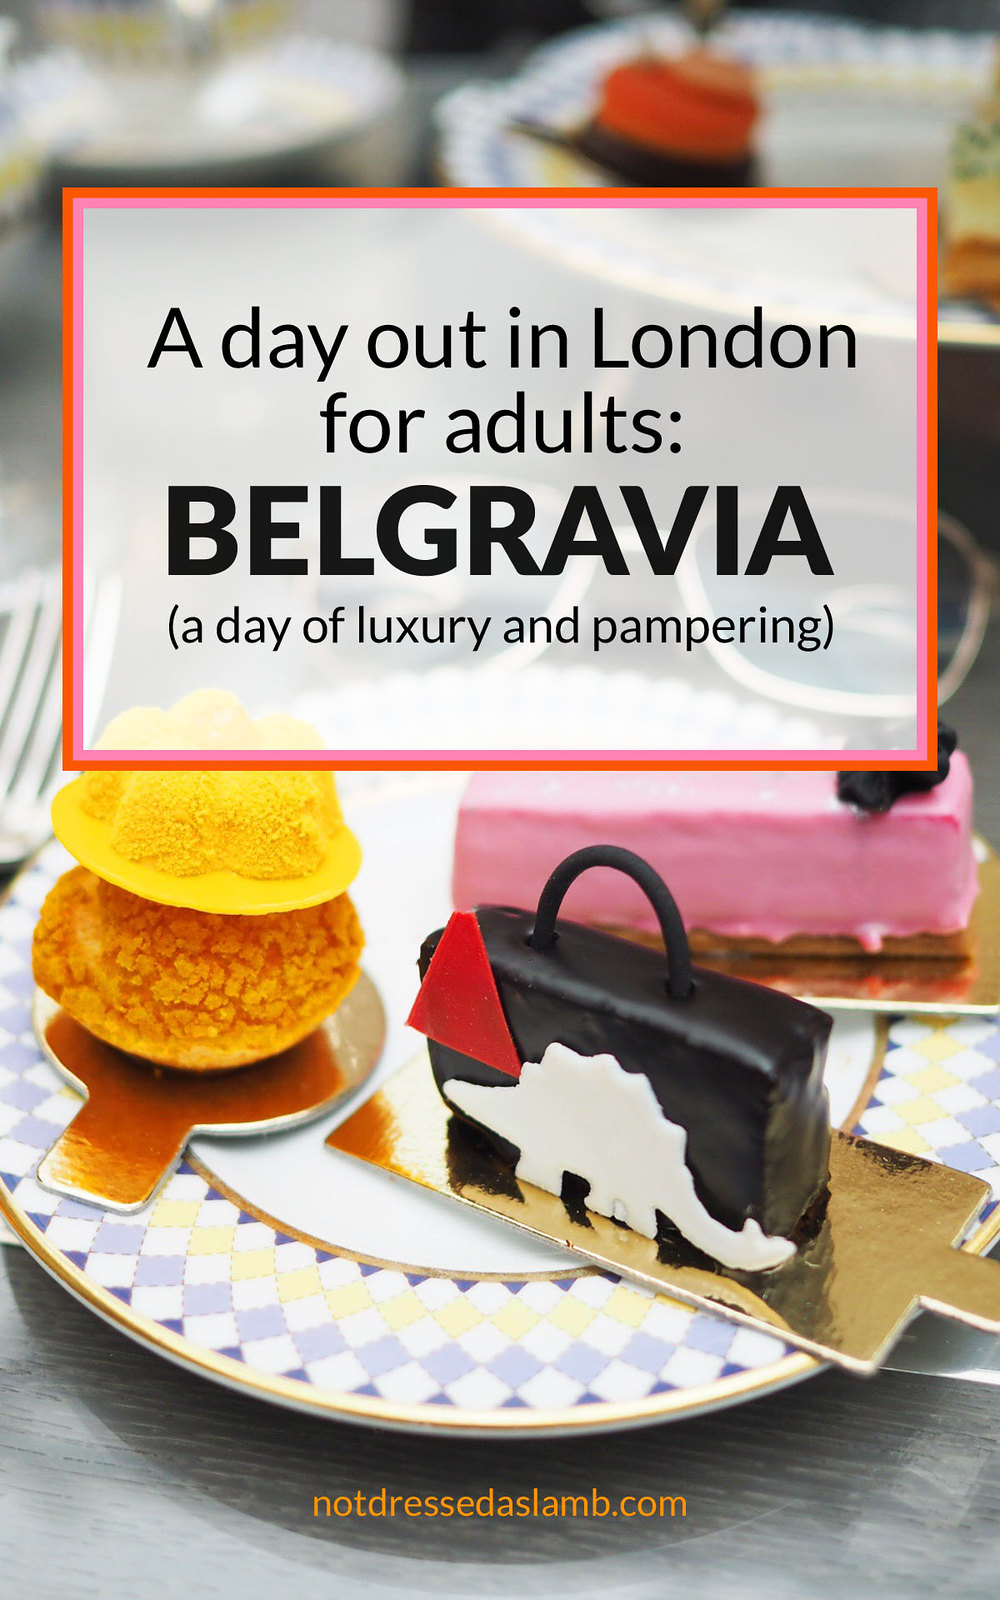 A Day Out in London for Adults: Belgravia | Not Dressed As Lamb, a blog for over 40 women